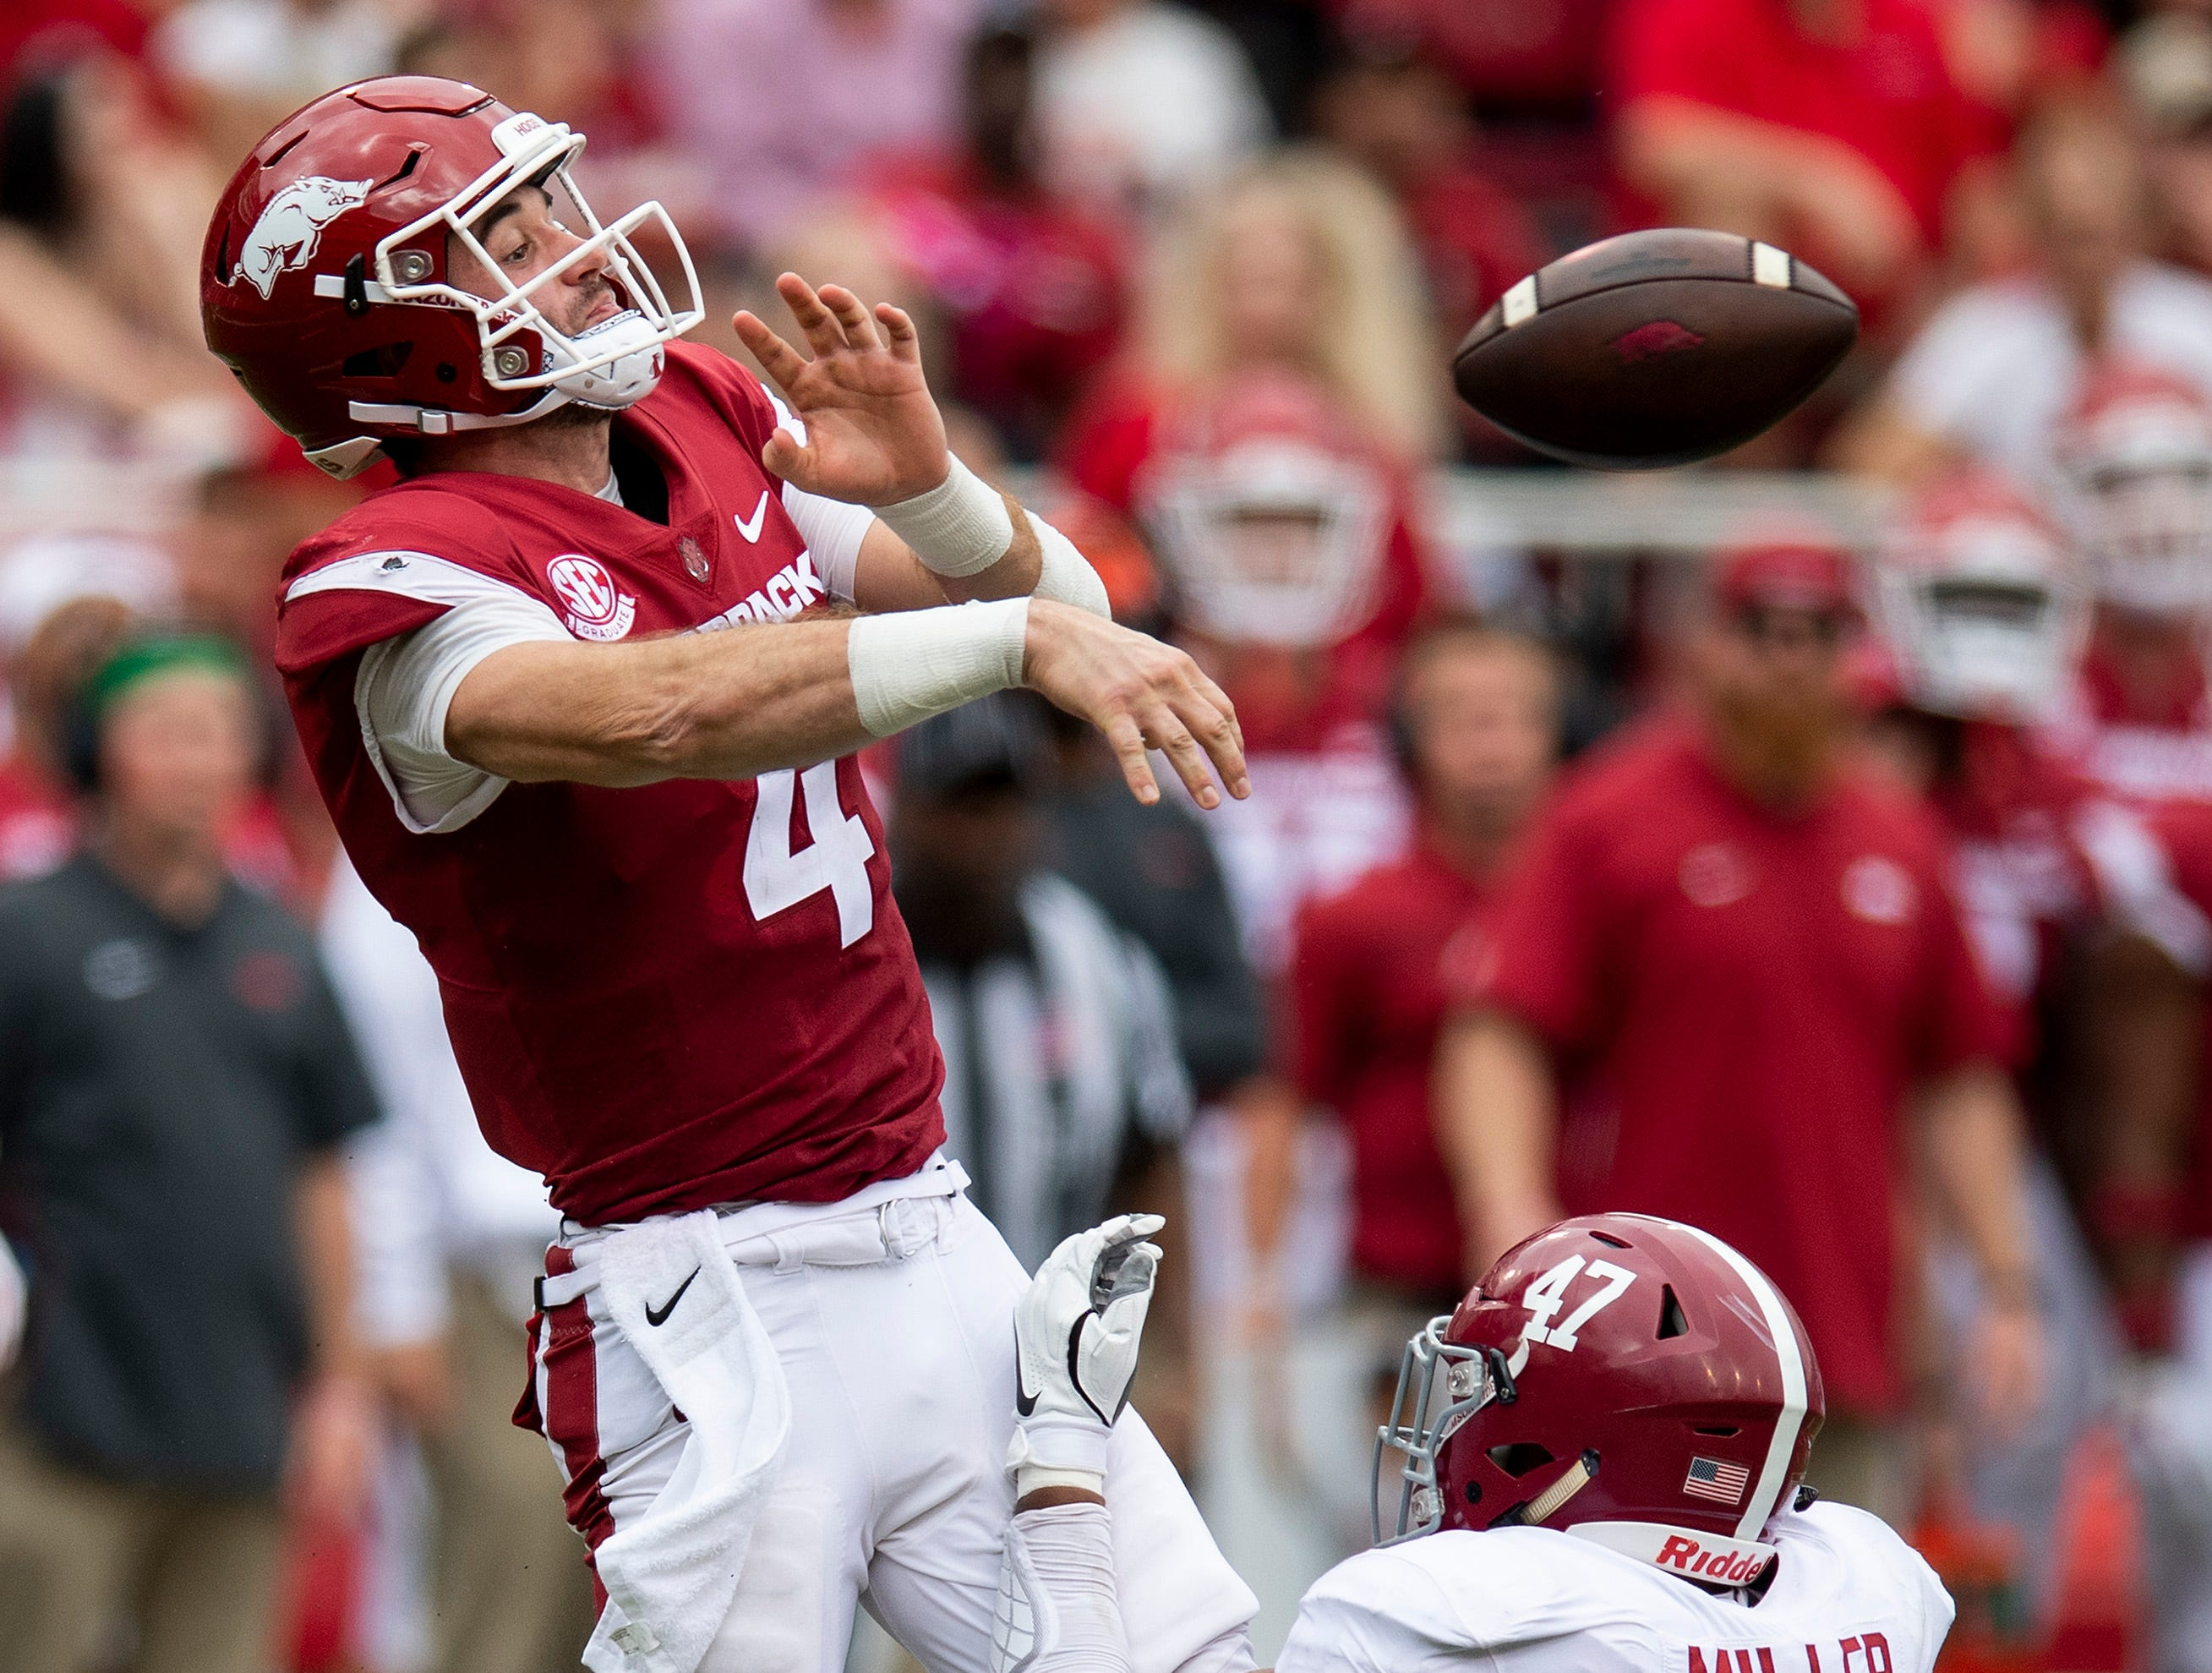 Arkansas quarterback Ty Storey (4)  throws an incomplete pass as Alabama linebacker Christian Miller (47) tackles him during first half action in Fayetteville, Ark., on Saturday October 6, 2018.